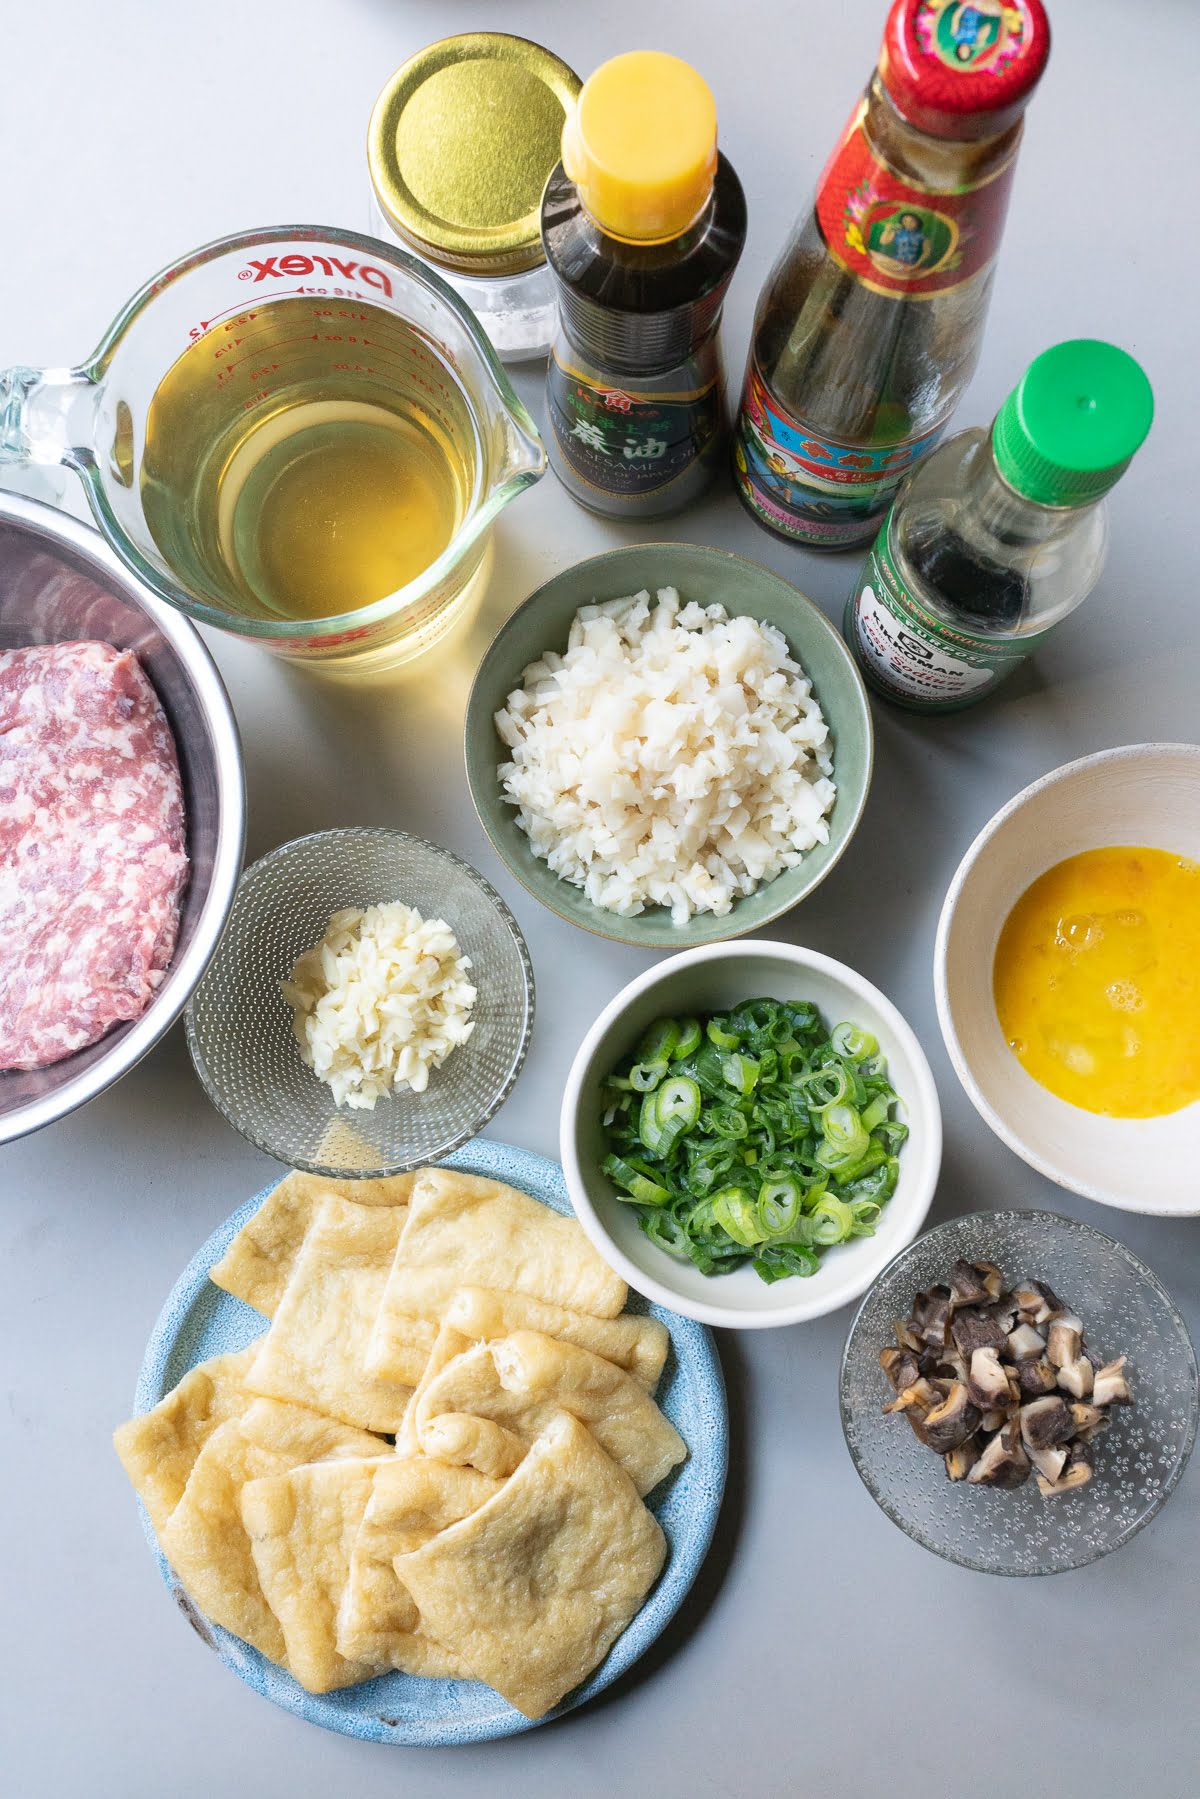 Ingredients for stuffed aburage (aburage, ground pork, garlic, water chestnuts, shiitake mushrooms, green onions, egg, soy sauce, oyster sauce, sesame oil, cornstarch, and broth), laid out on a table.